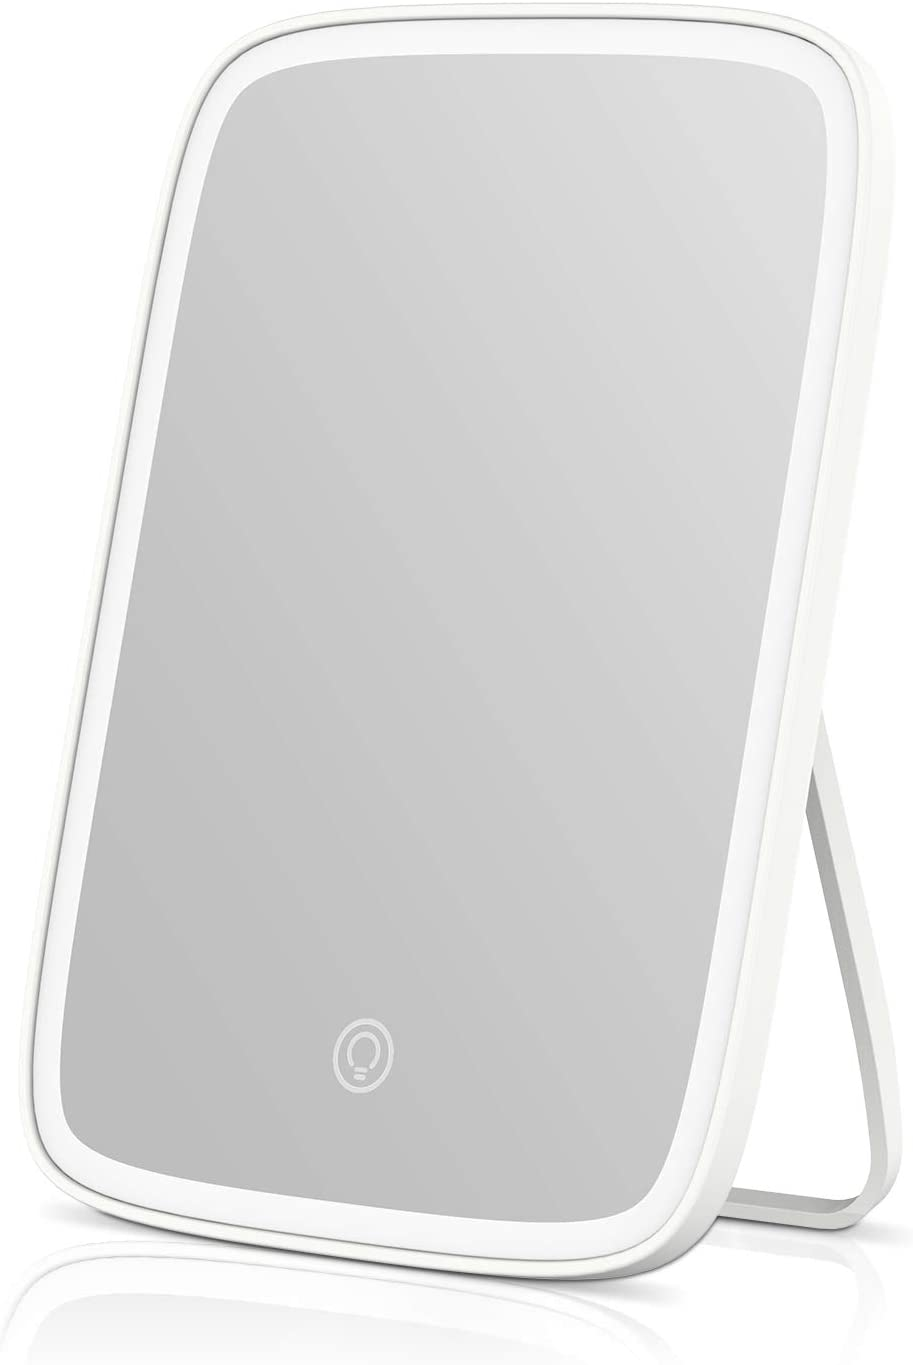 OURISE Makeup Mirror with Lights Year-end annual account Vanity Daily bargain sale Lighted Led